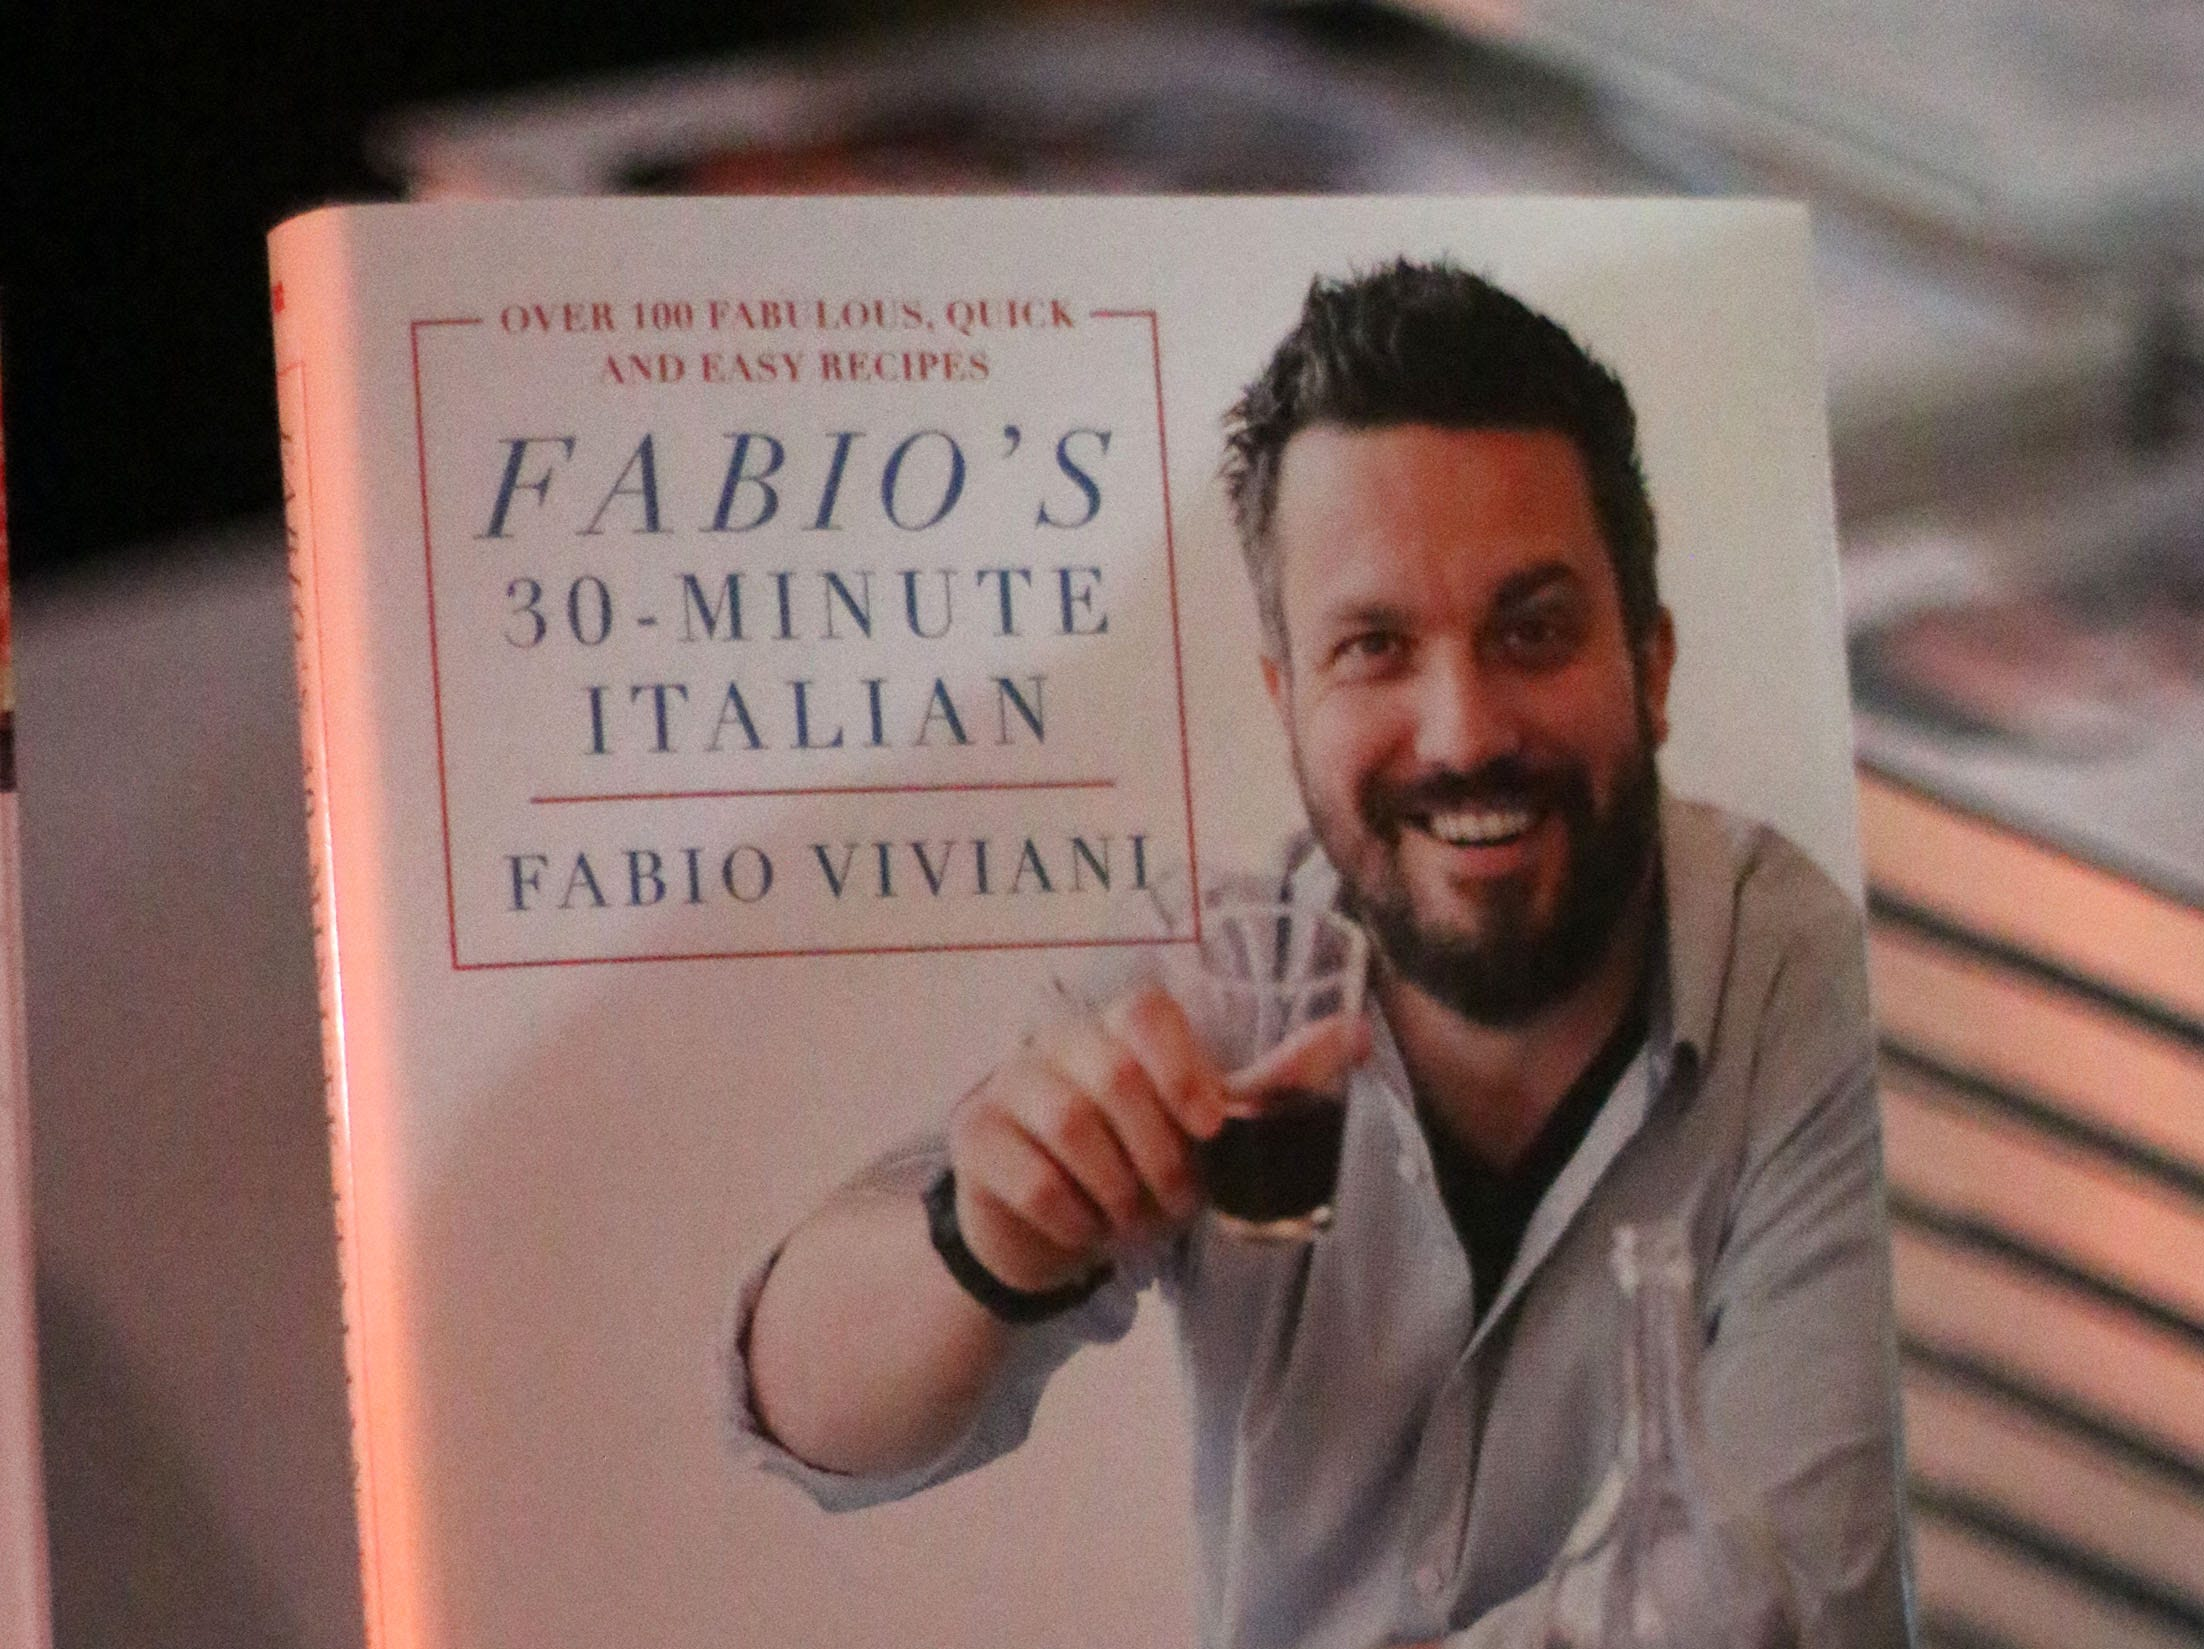 A Fabio Viviani cook book at Kohler Food and Wine, Saturday, October 20, 2018, in Kohler, Wis.